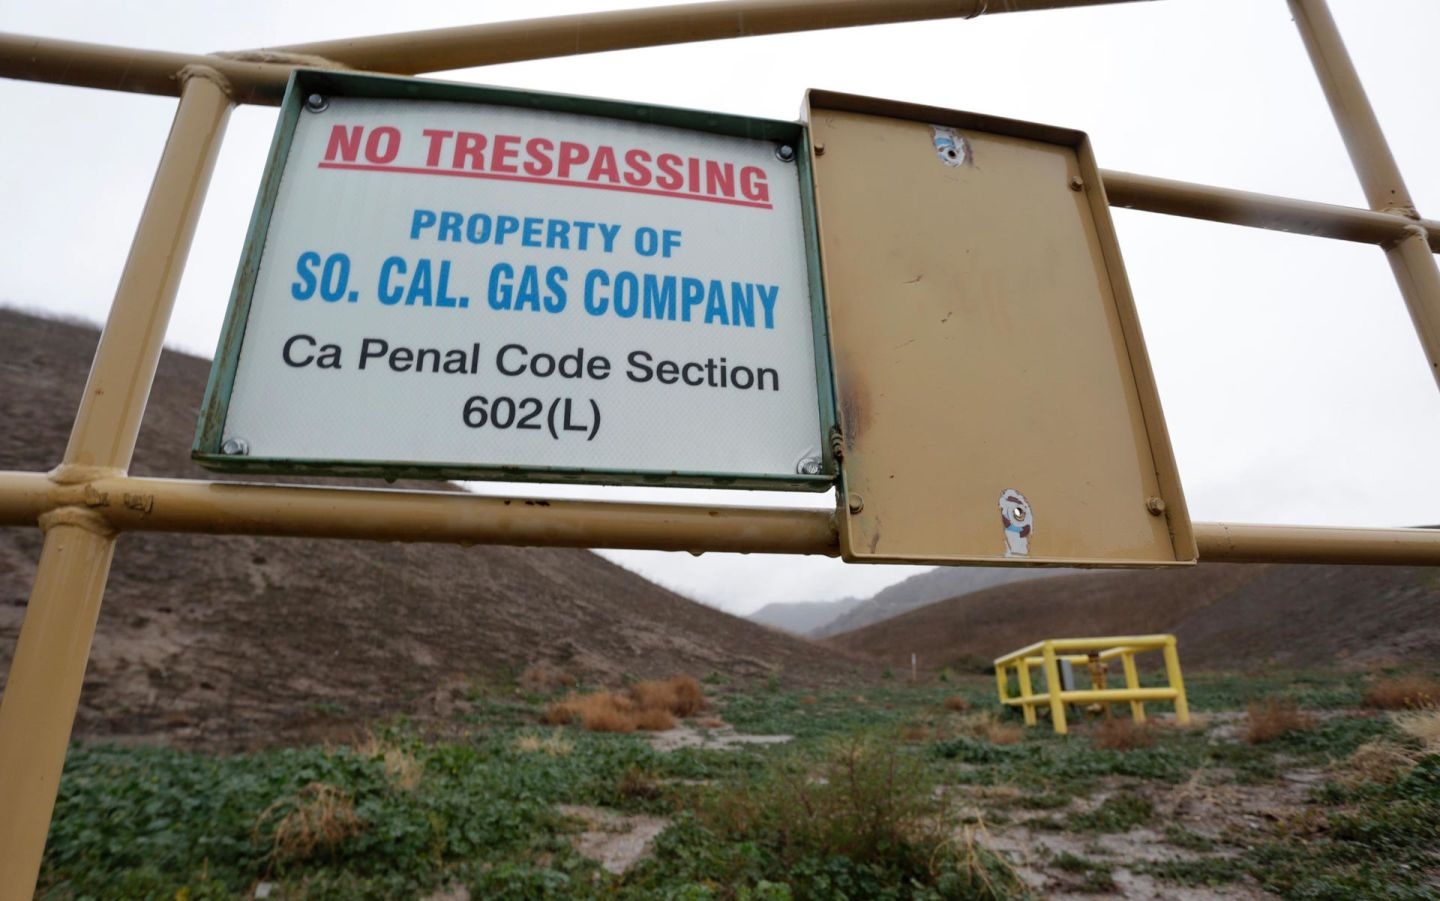 A sign marking the boundary of the Aliso Canyon storage facility is pictured in Porter Ranch, California, on Jan. 6, 2016.  Jonathan Alcorn/Getty Images